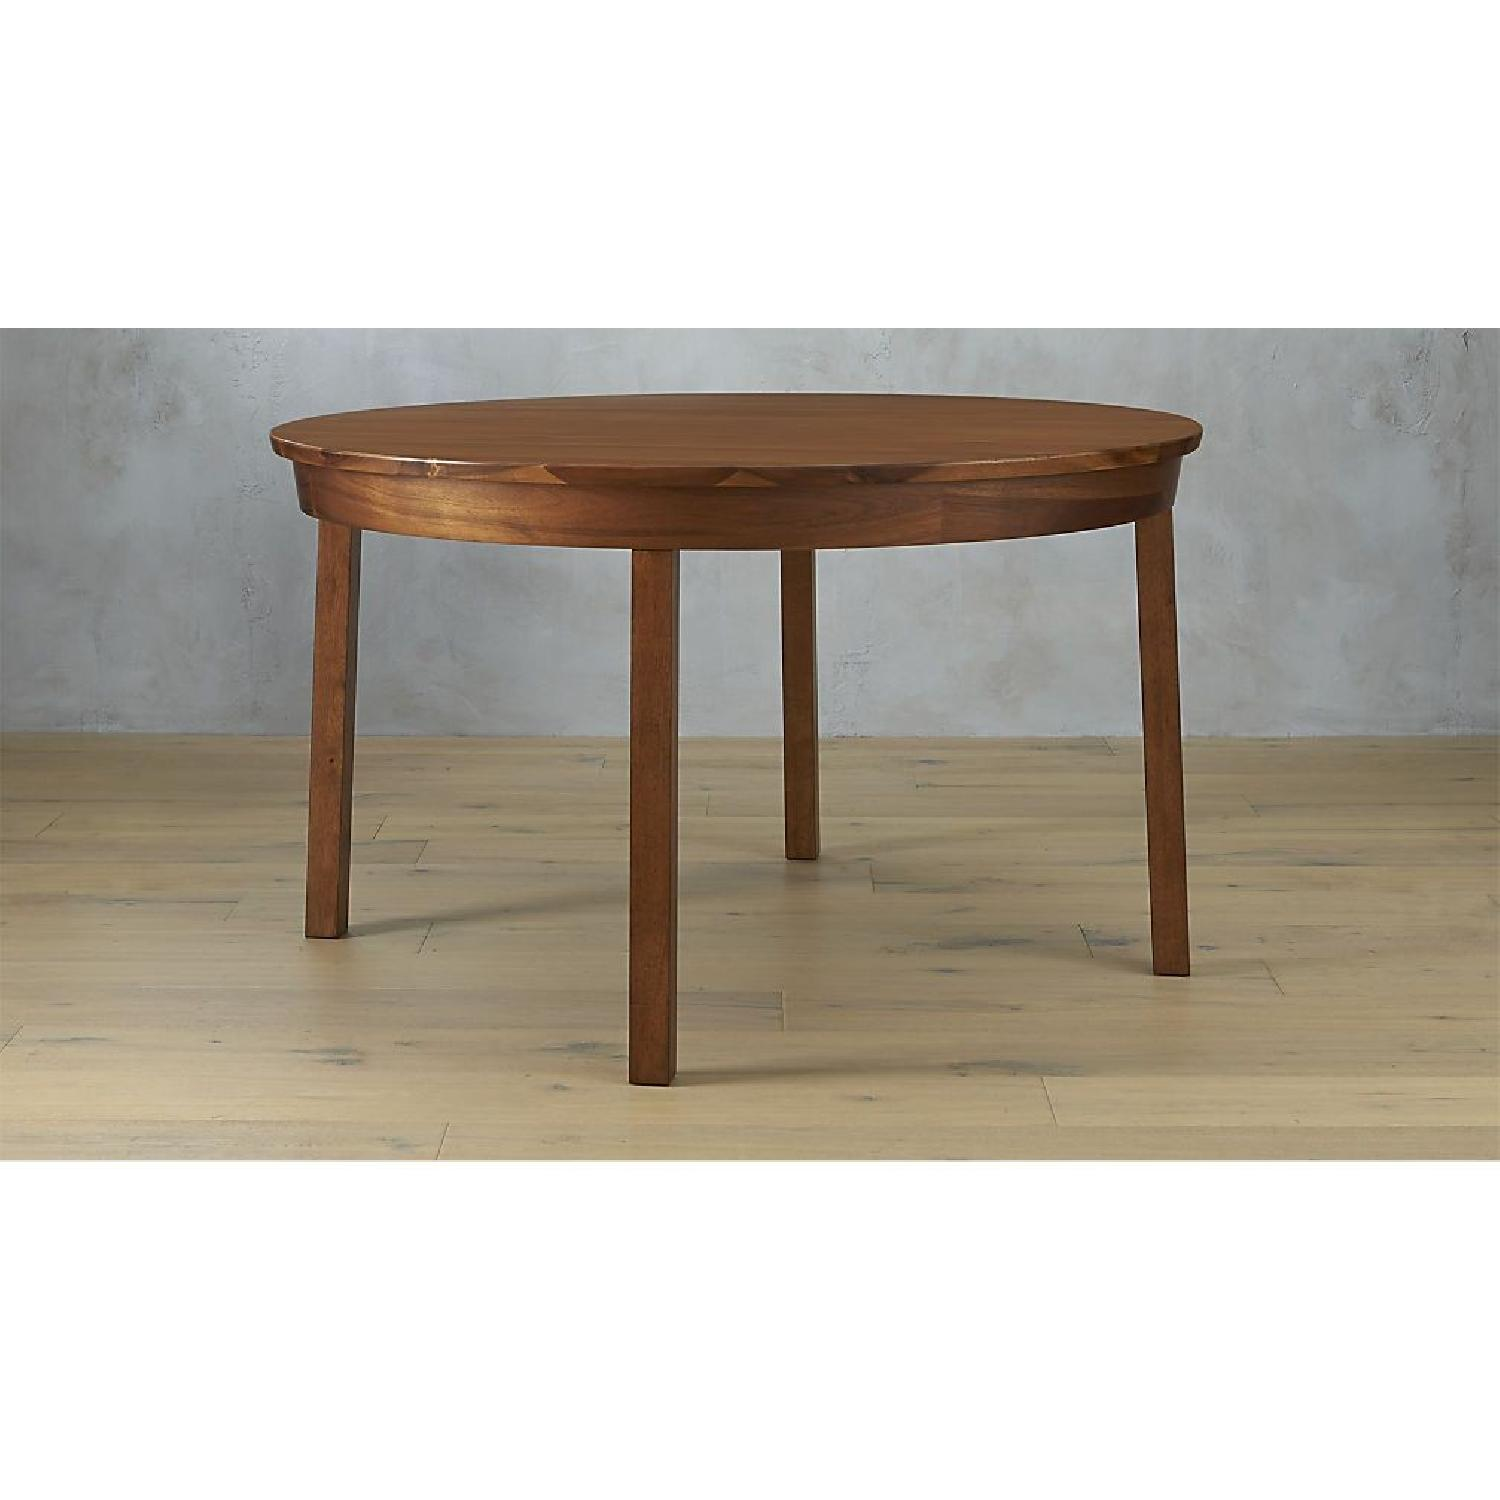 CB2 Claremont Round Wood Dining Table-3